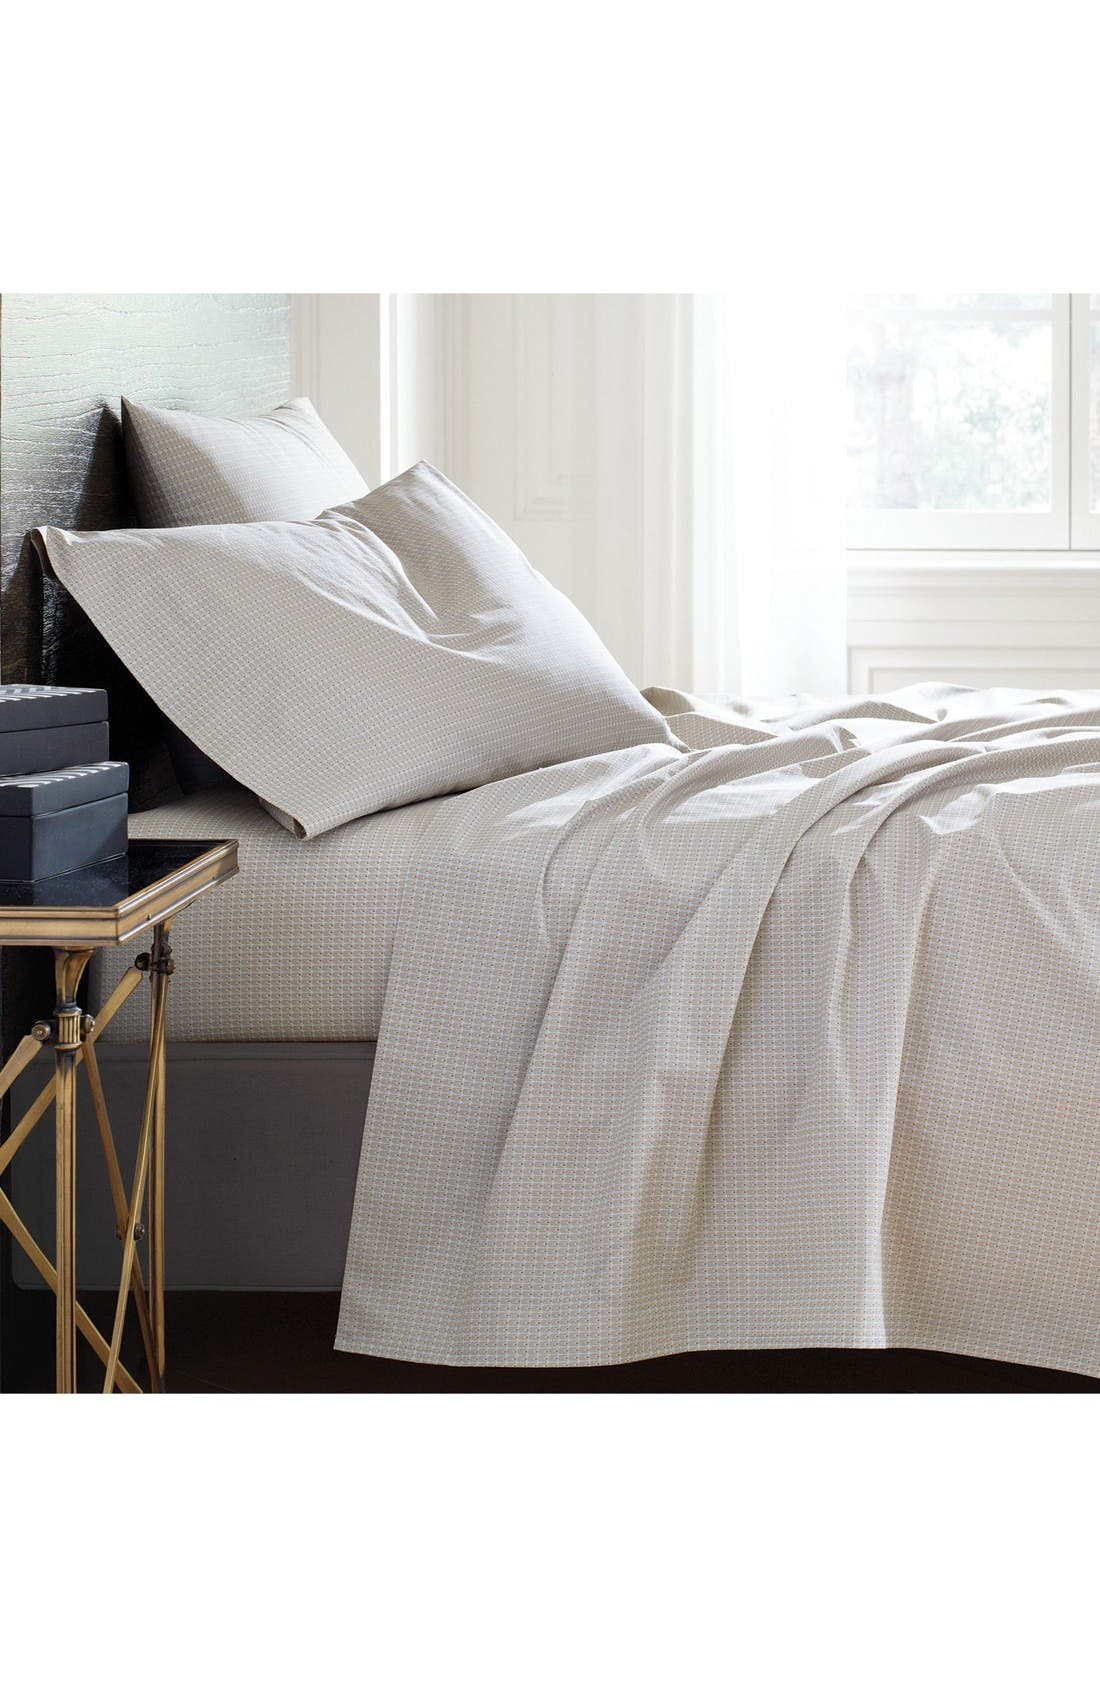 DwellStudio 'Ondine' 300 Thread Count Sheet Set